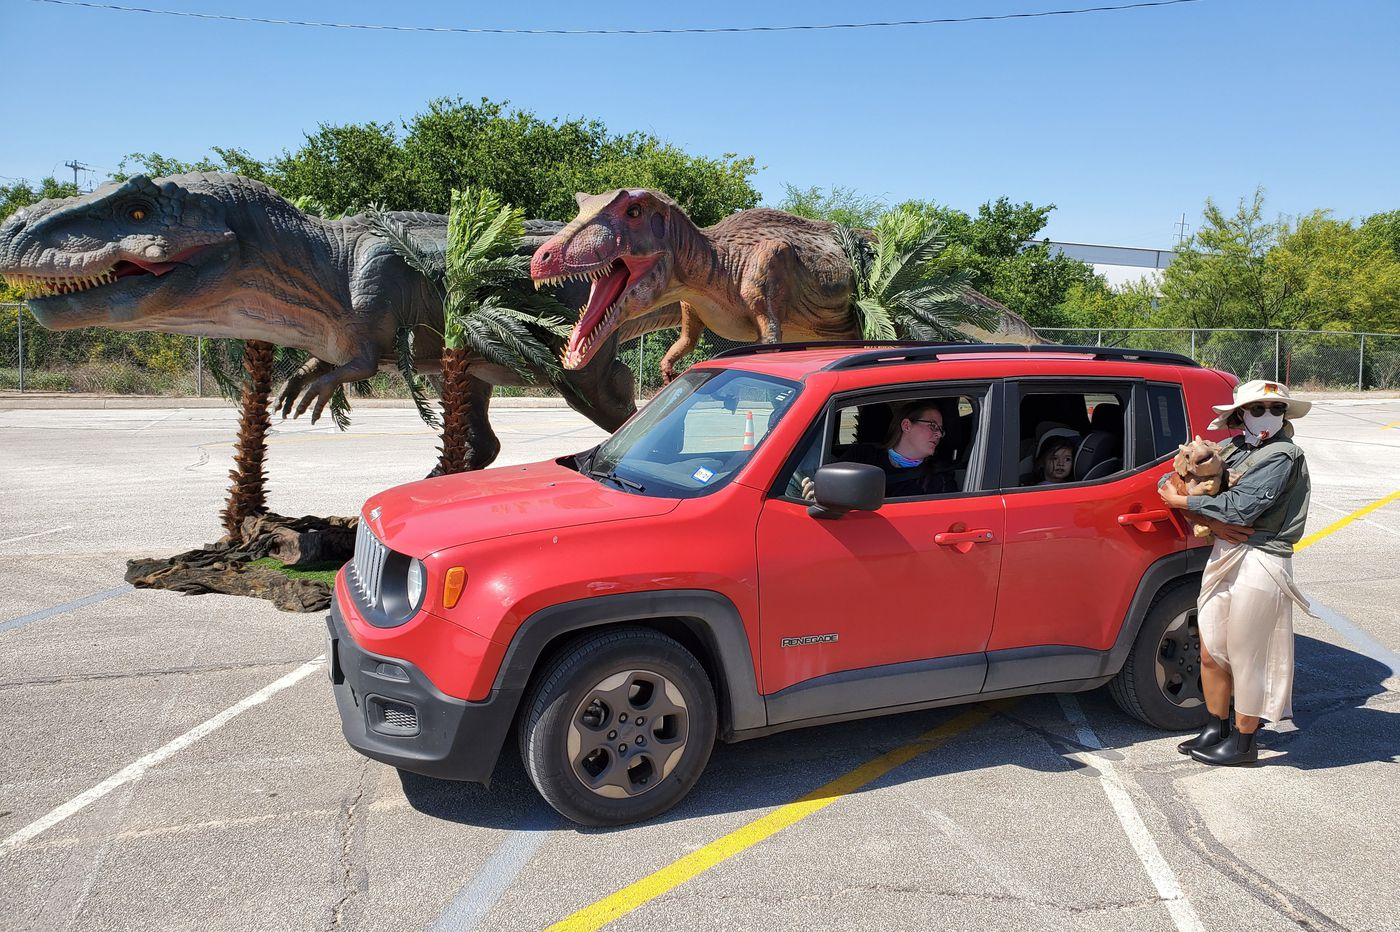 Jurassic drive-through is coming to Wells Fargo — plus more family fun to squeeze in as 'school' starts